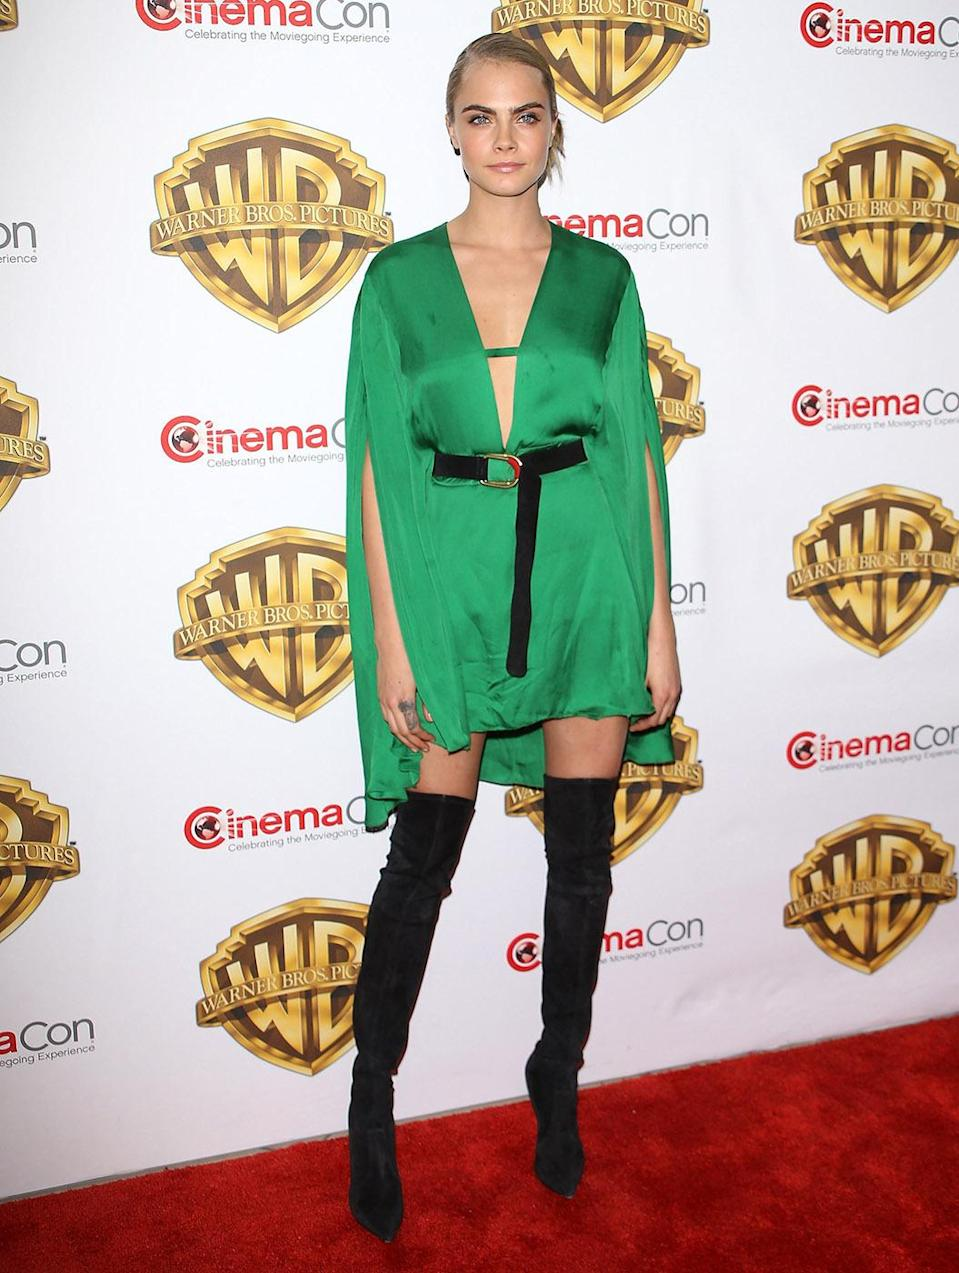 Mila Kunis, Jennifer Lawrence, Will Smith, and More at the ...